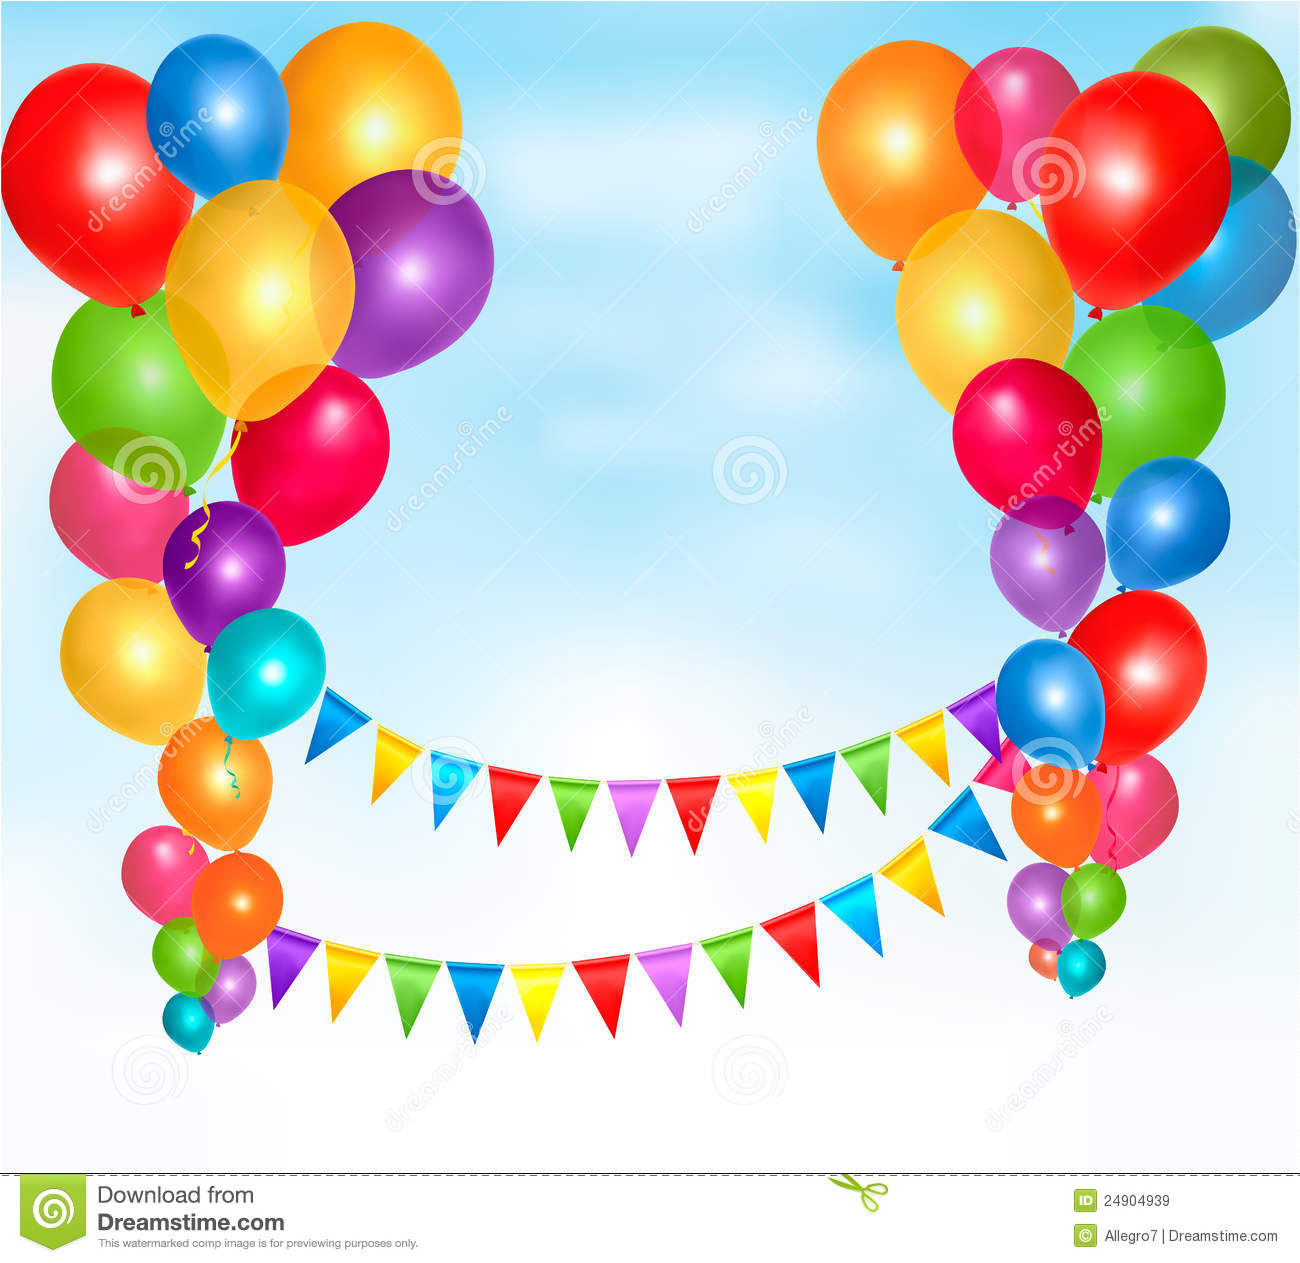 Birthday Balloons Frame Composition Royalty Free Stock